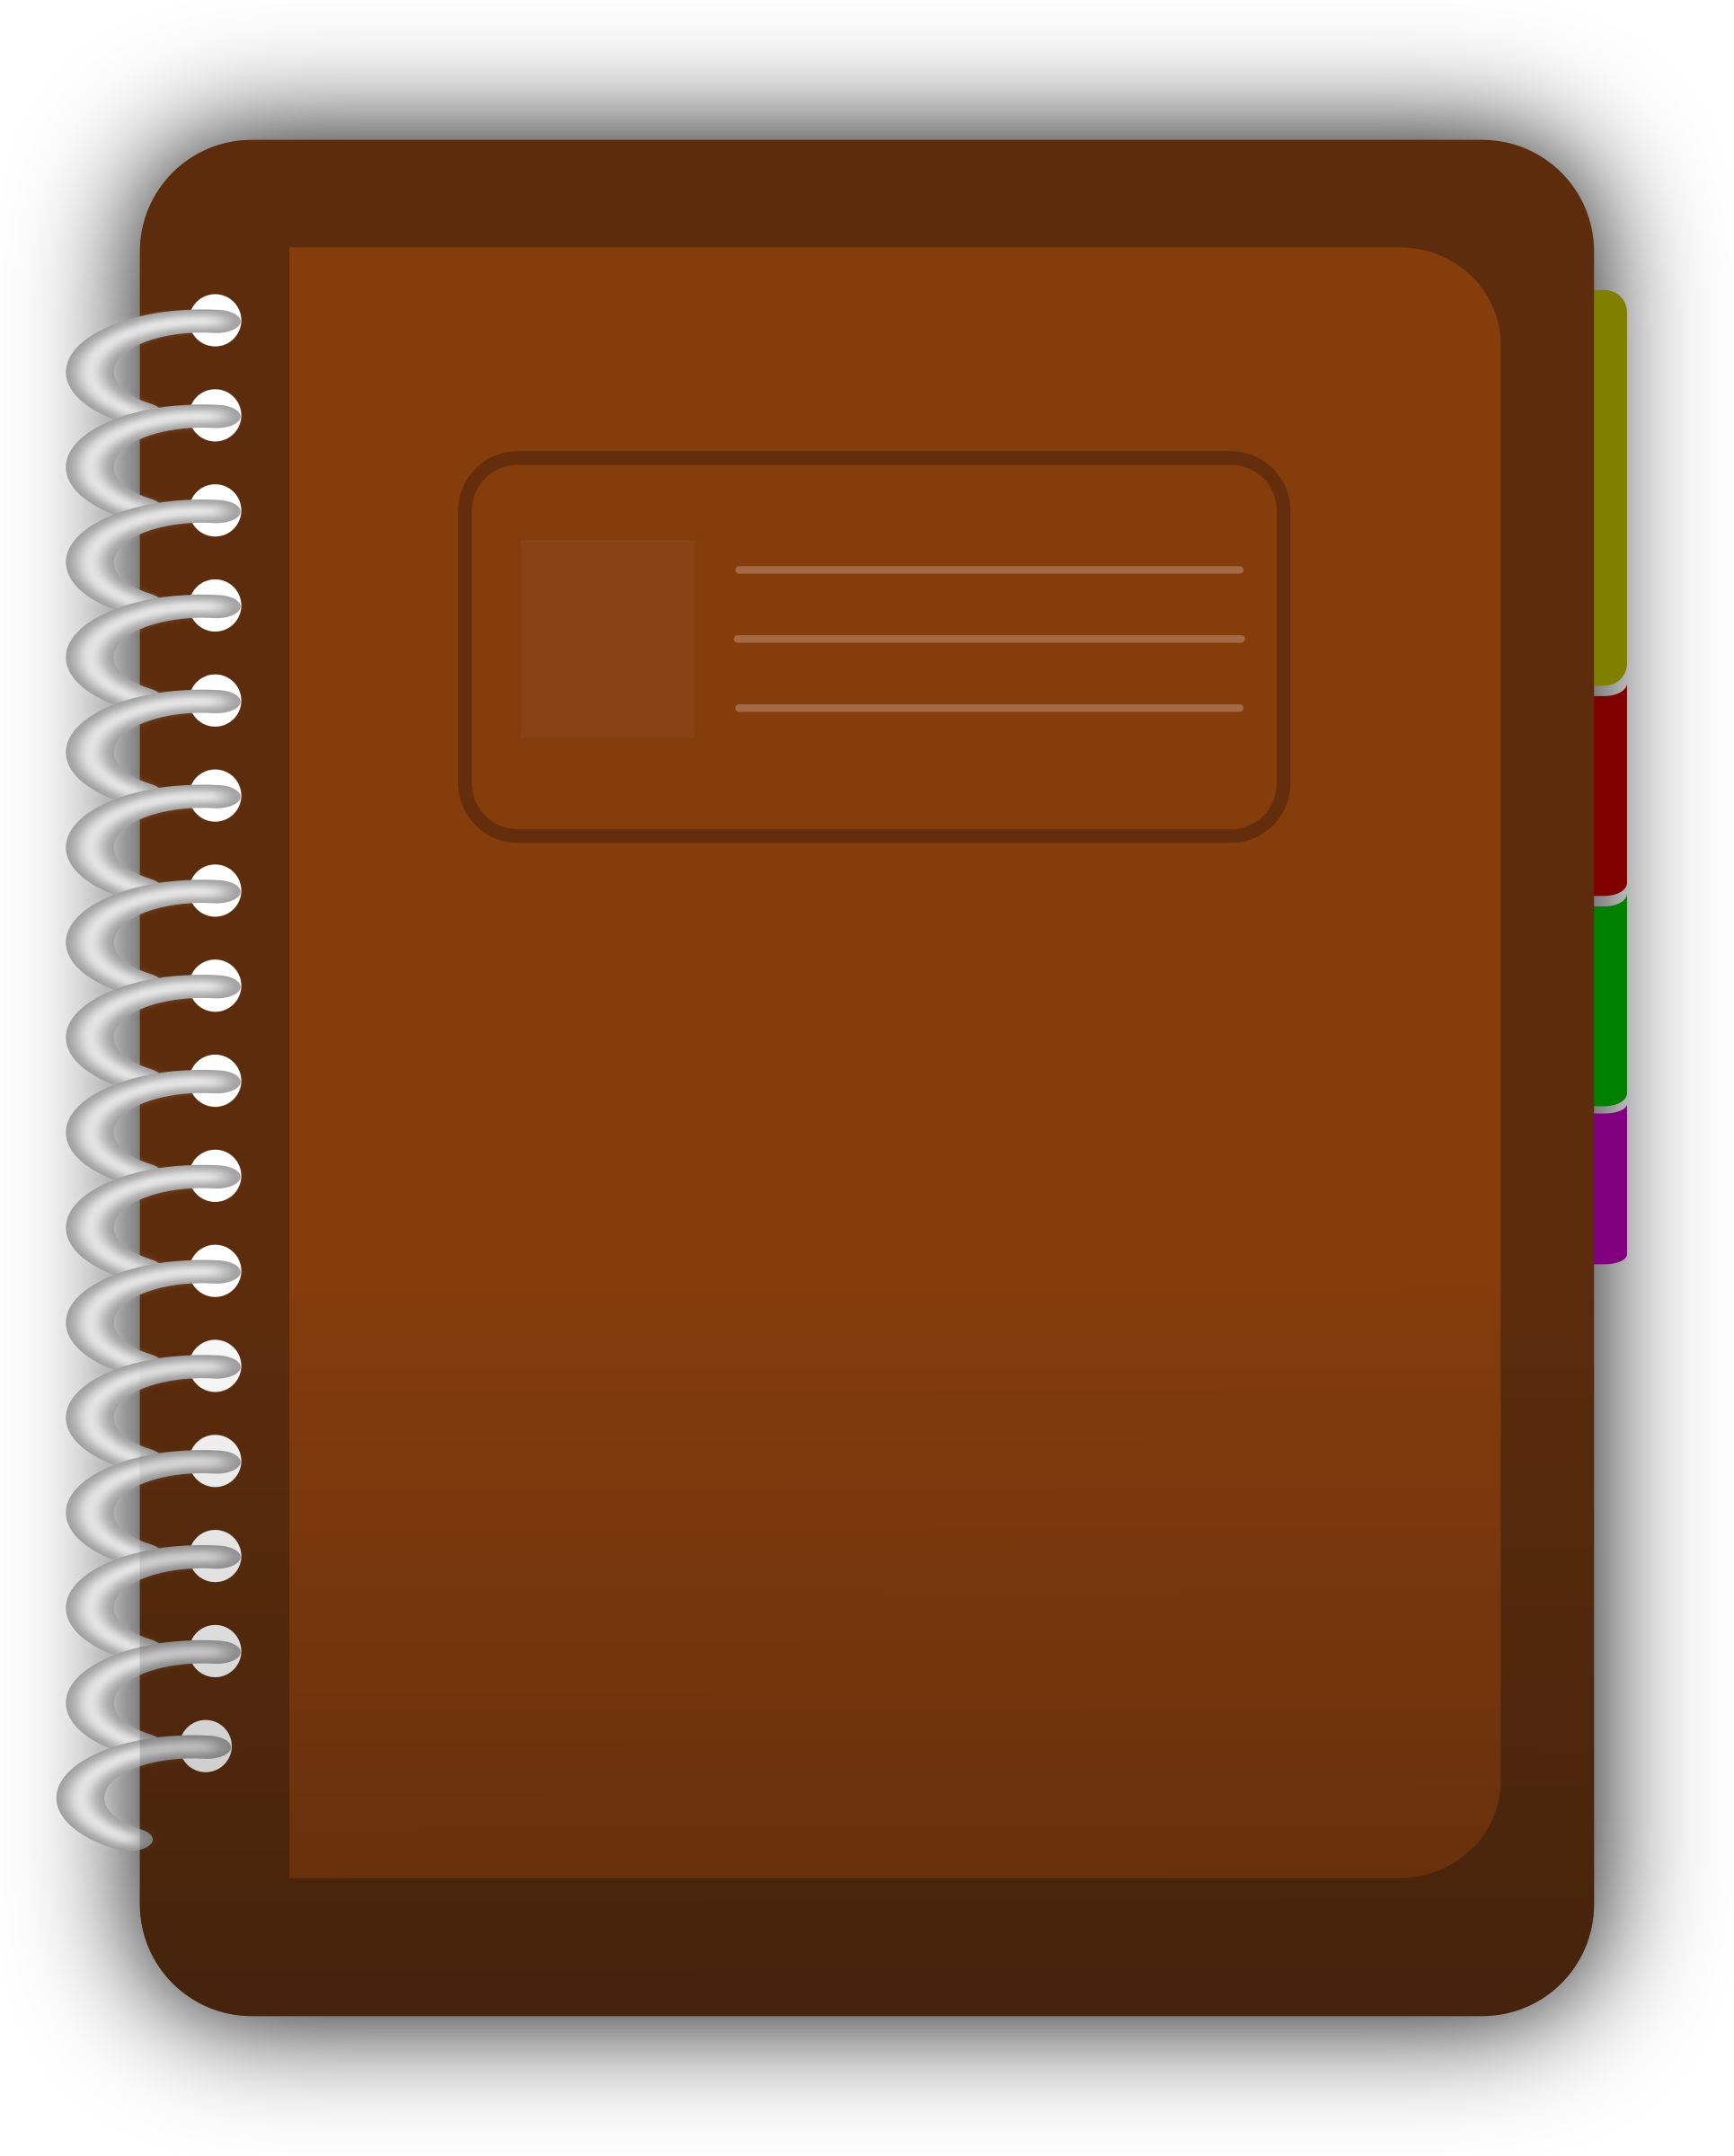 Journal clipart clip art. Diary big image png